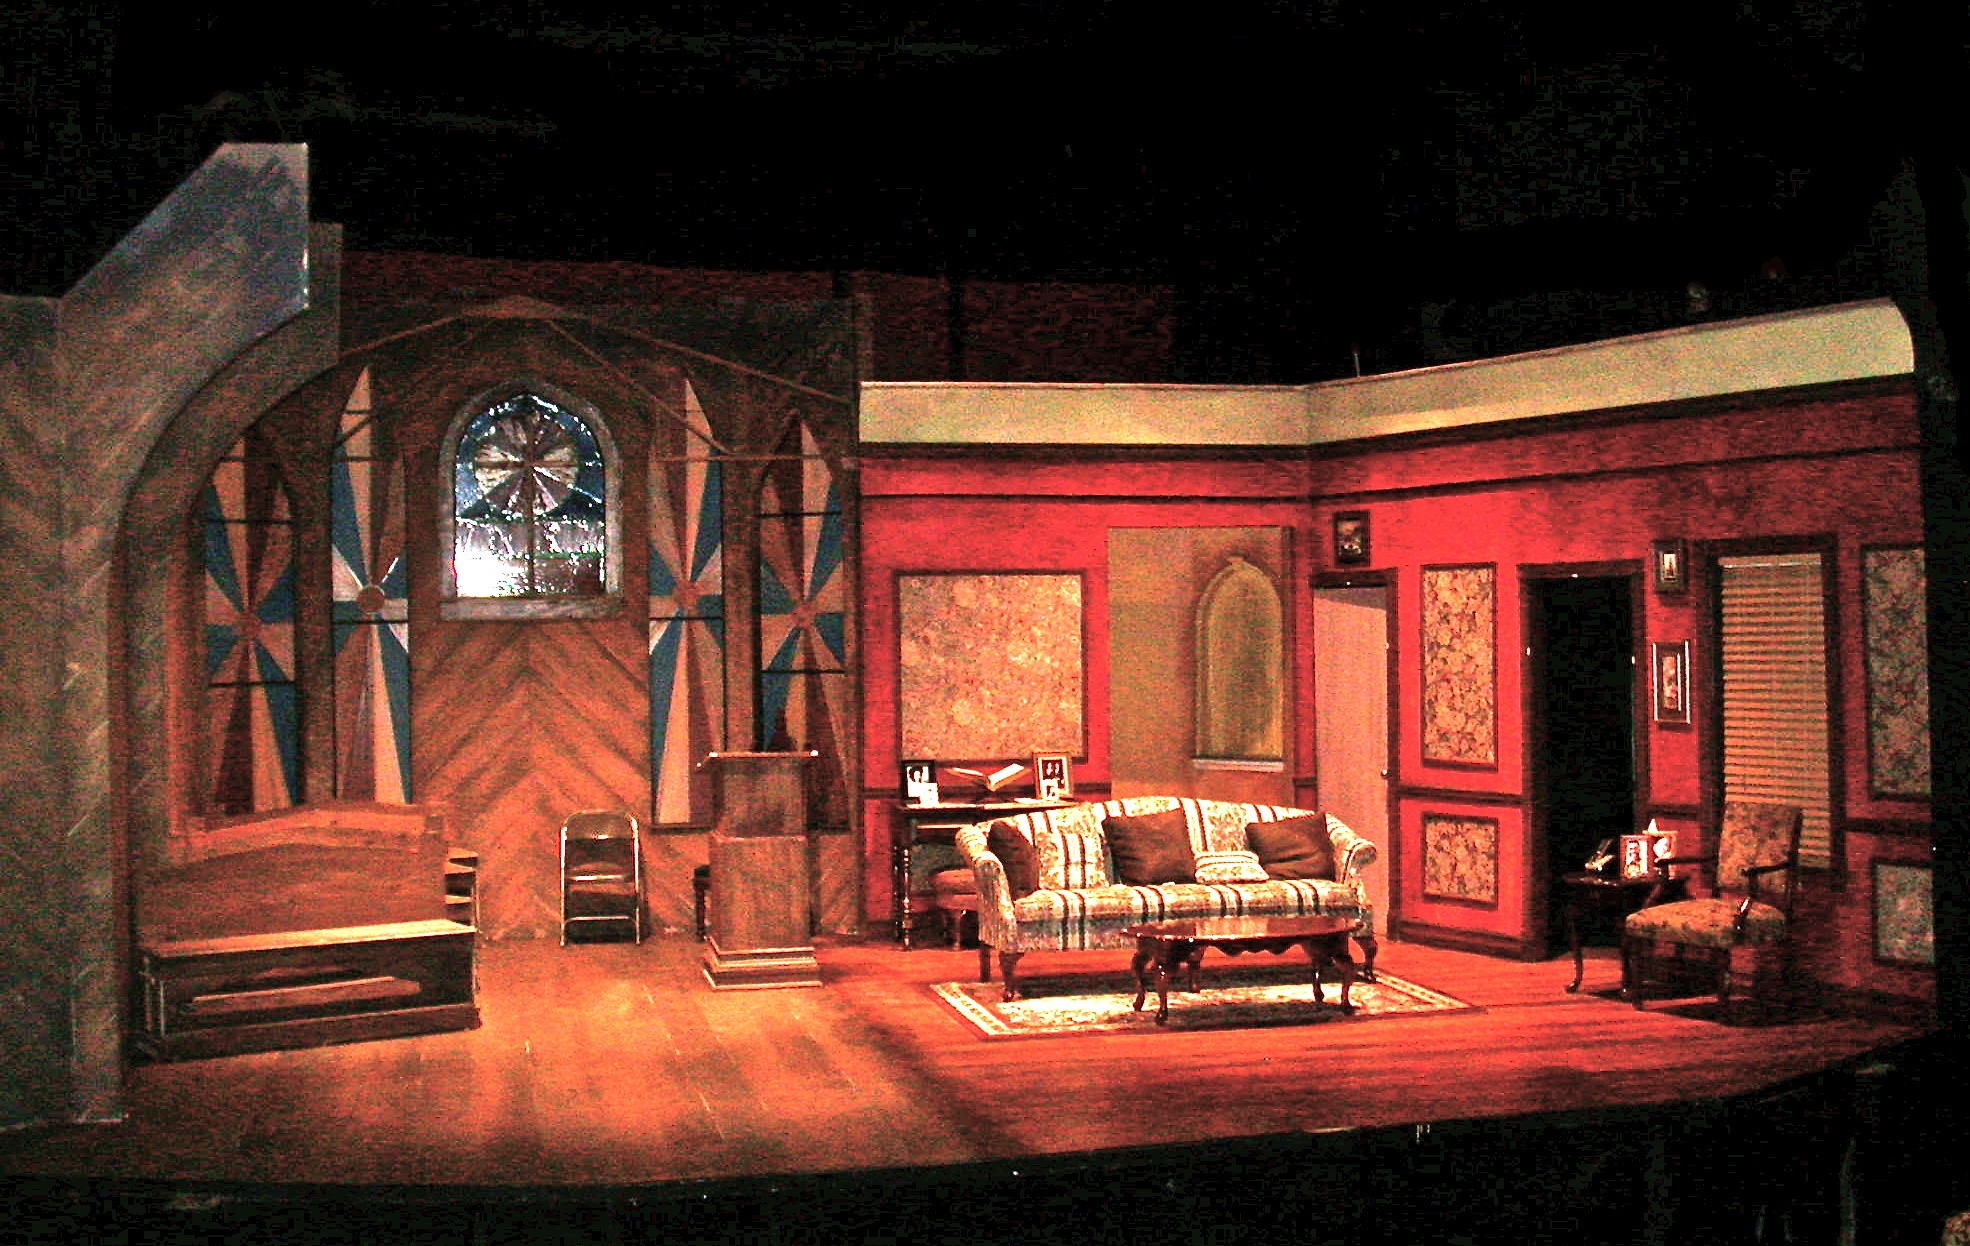 Set Design By Patrice Andrew Davidson At Coroflotcom